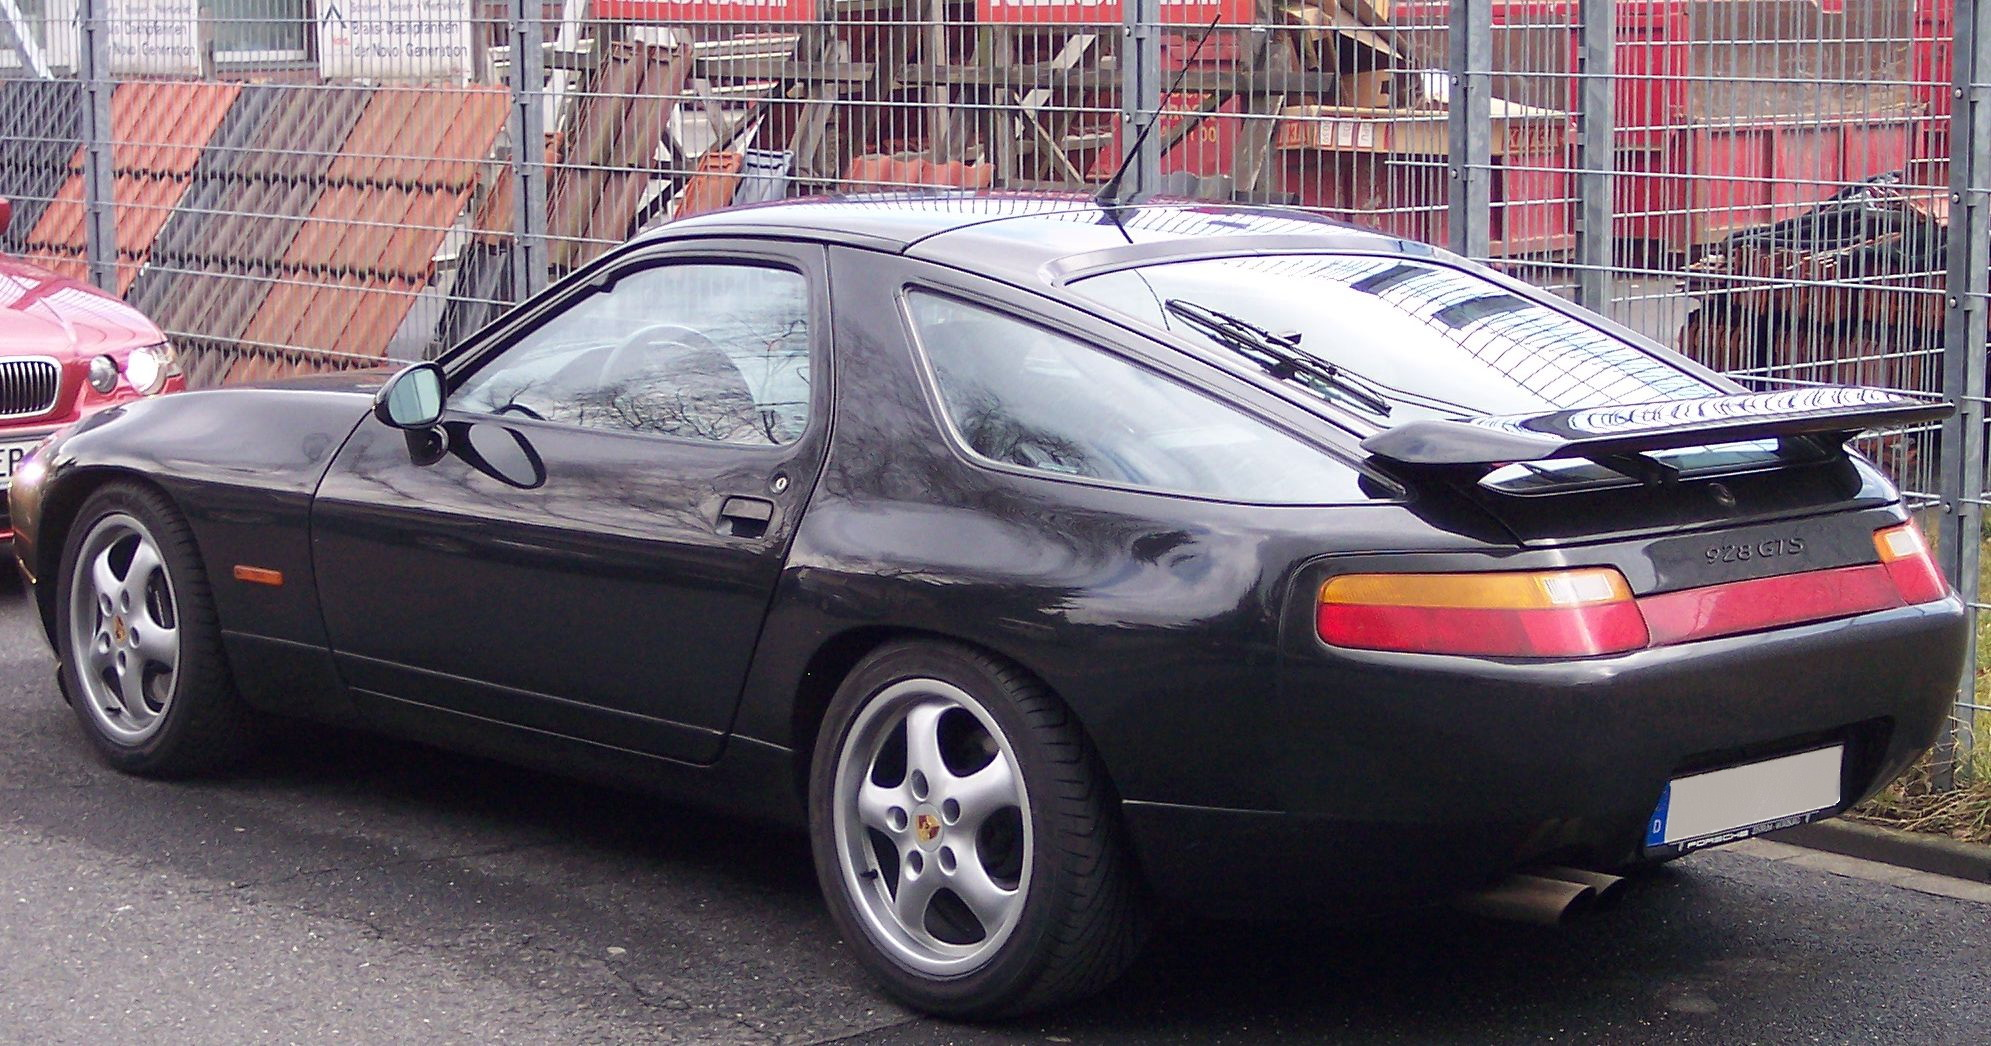 File:Porsche 928 GTS hl blue.jpg - Wikipedia, the free encyclopedia